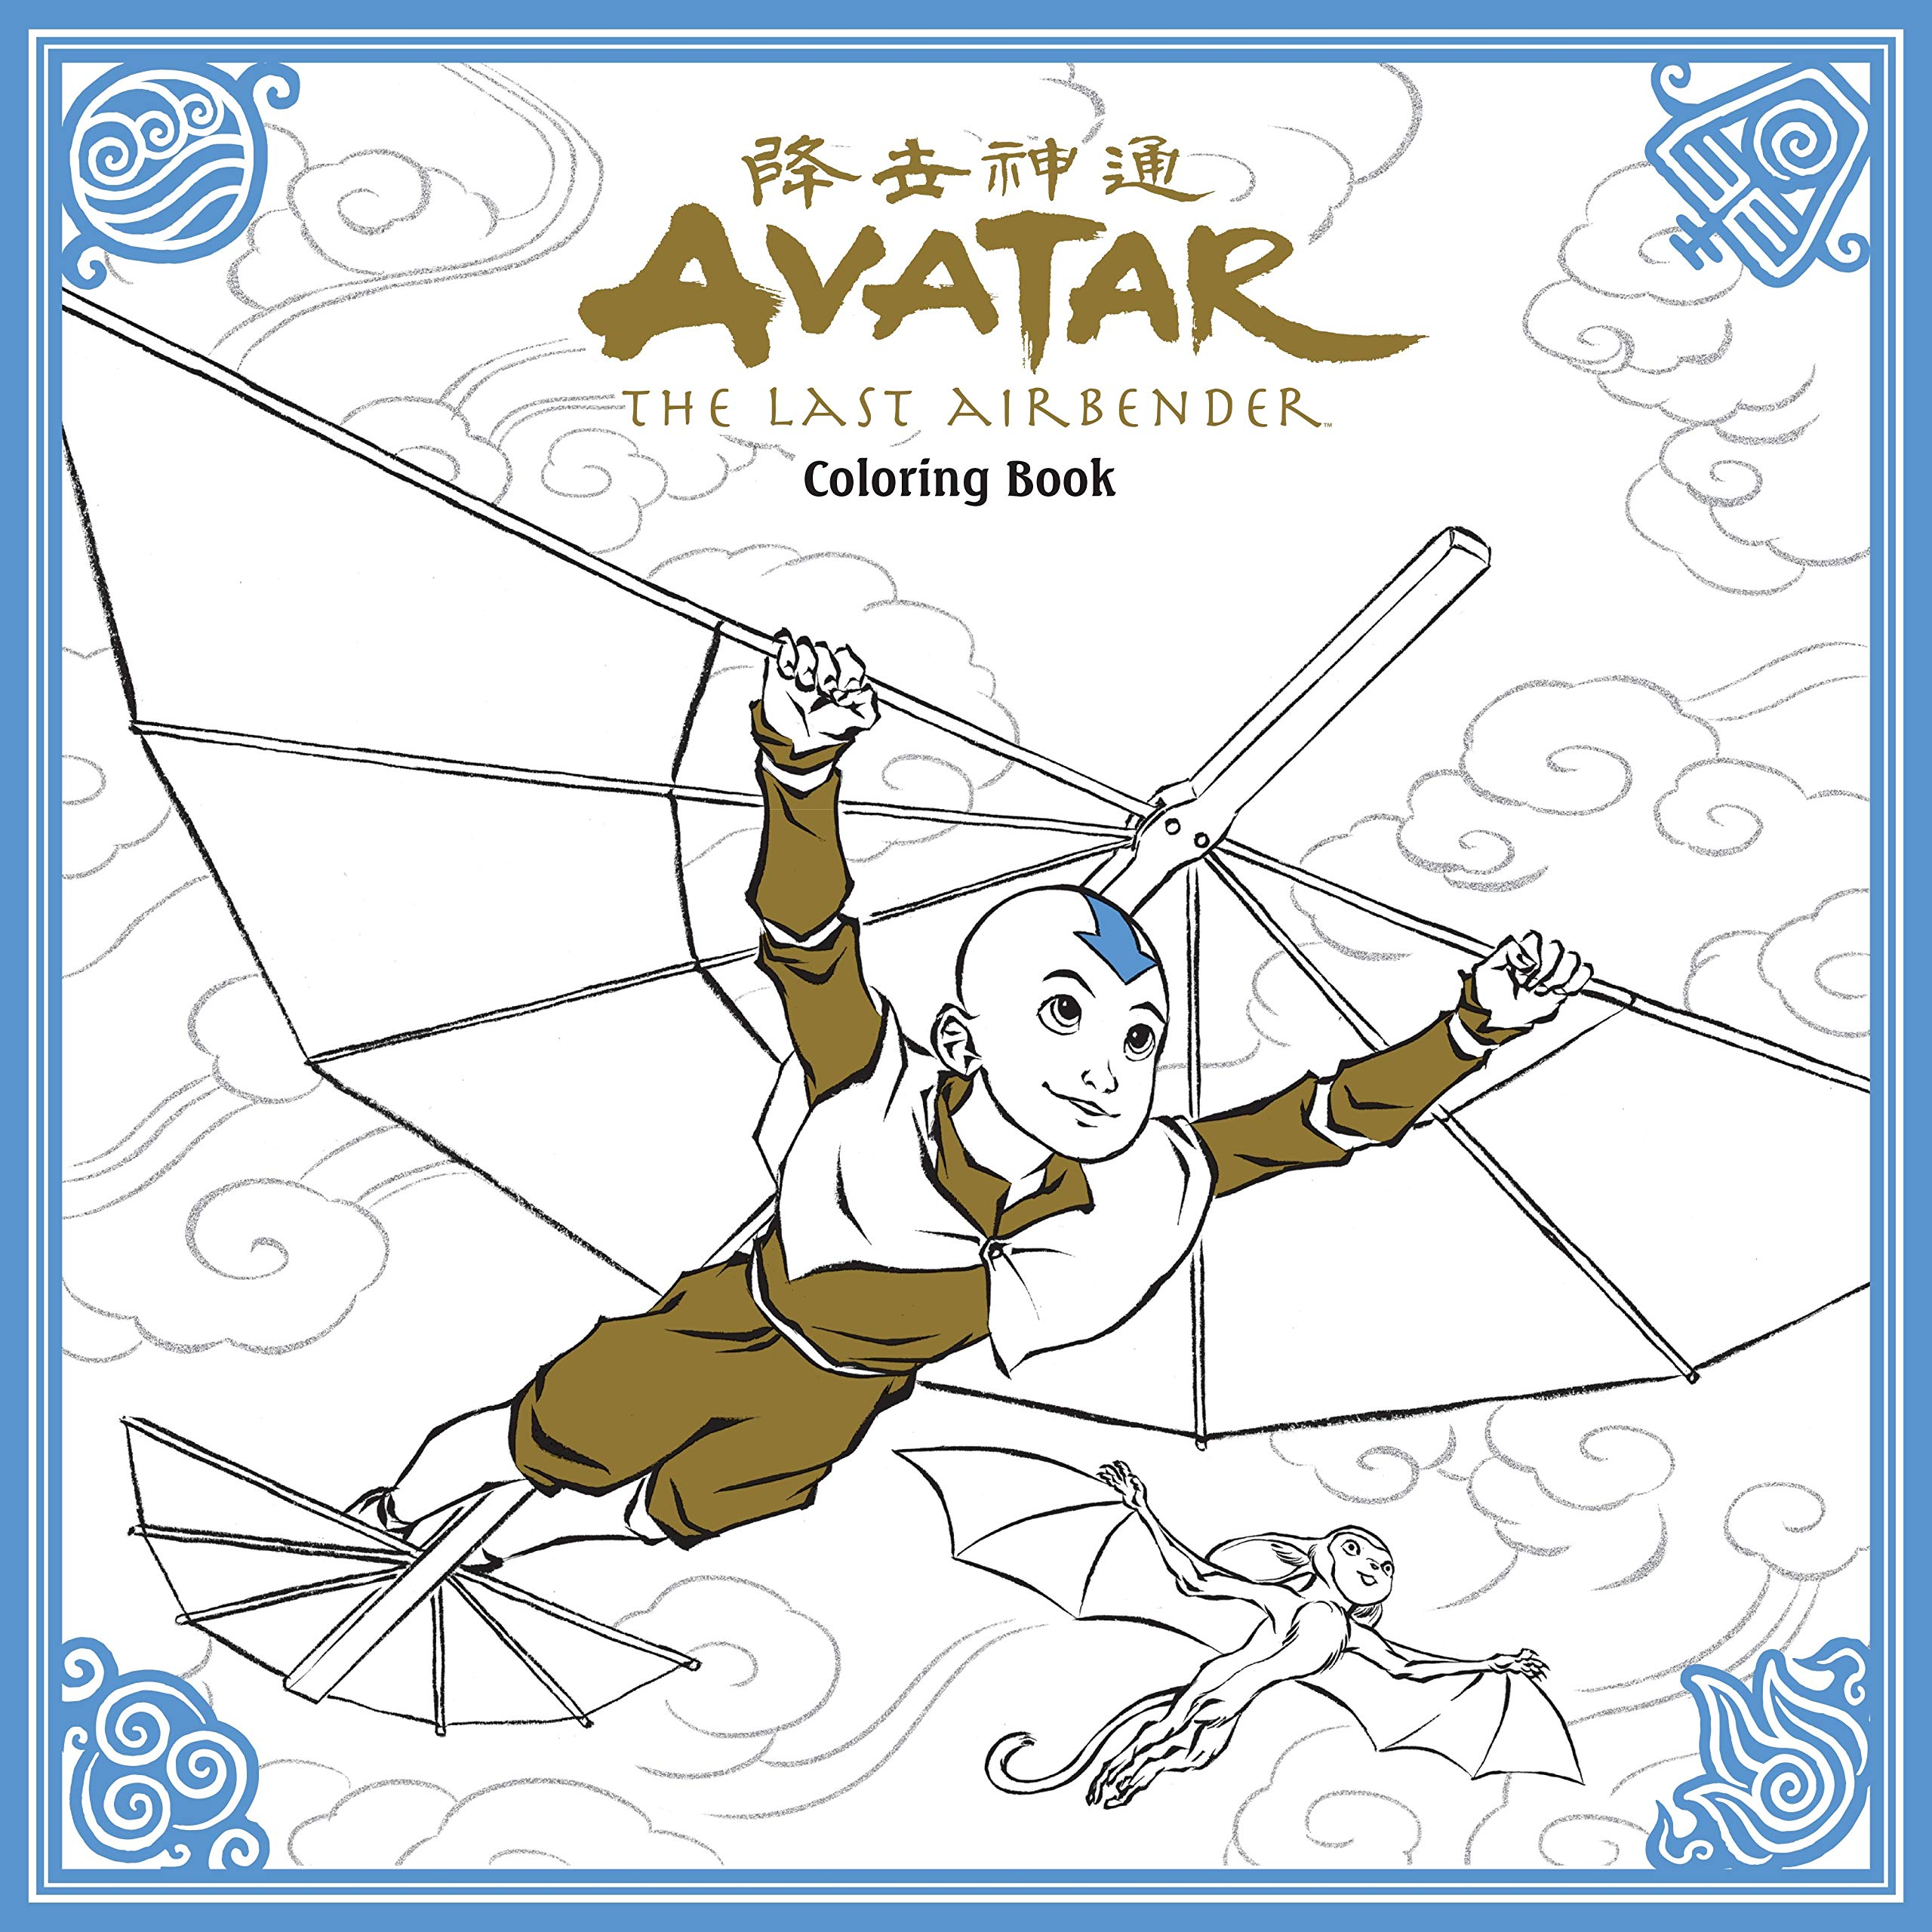 Avatar The Last Airbender Coloring Book Nickelodeon 9781506702360 Amazon Com Books